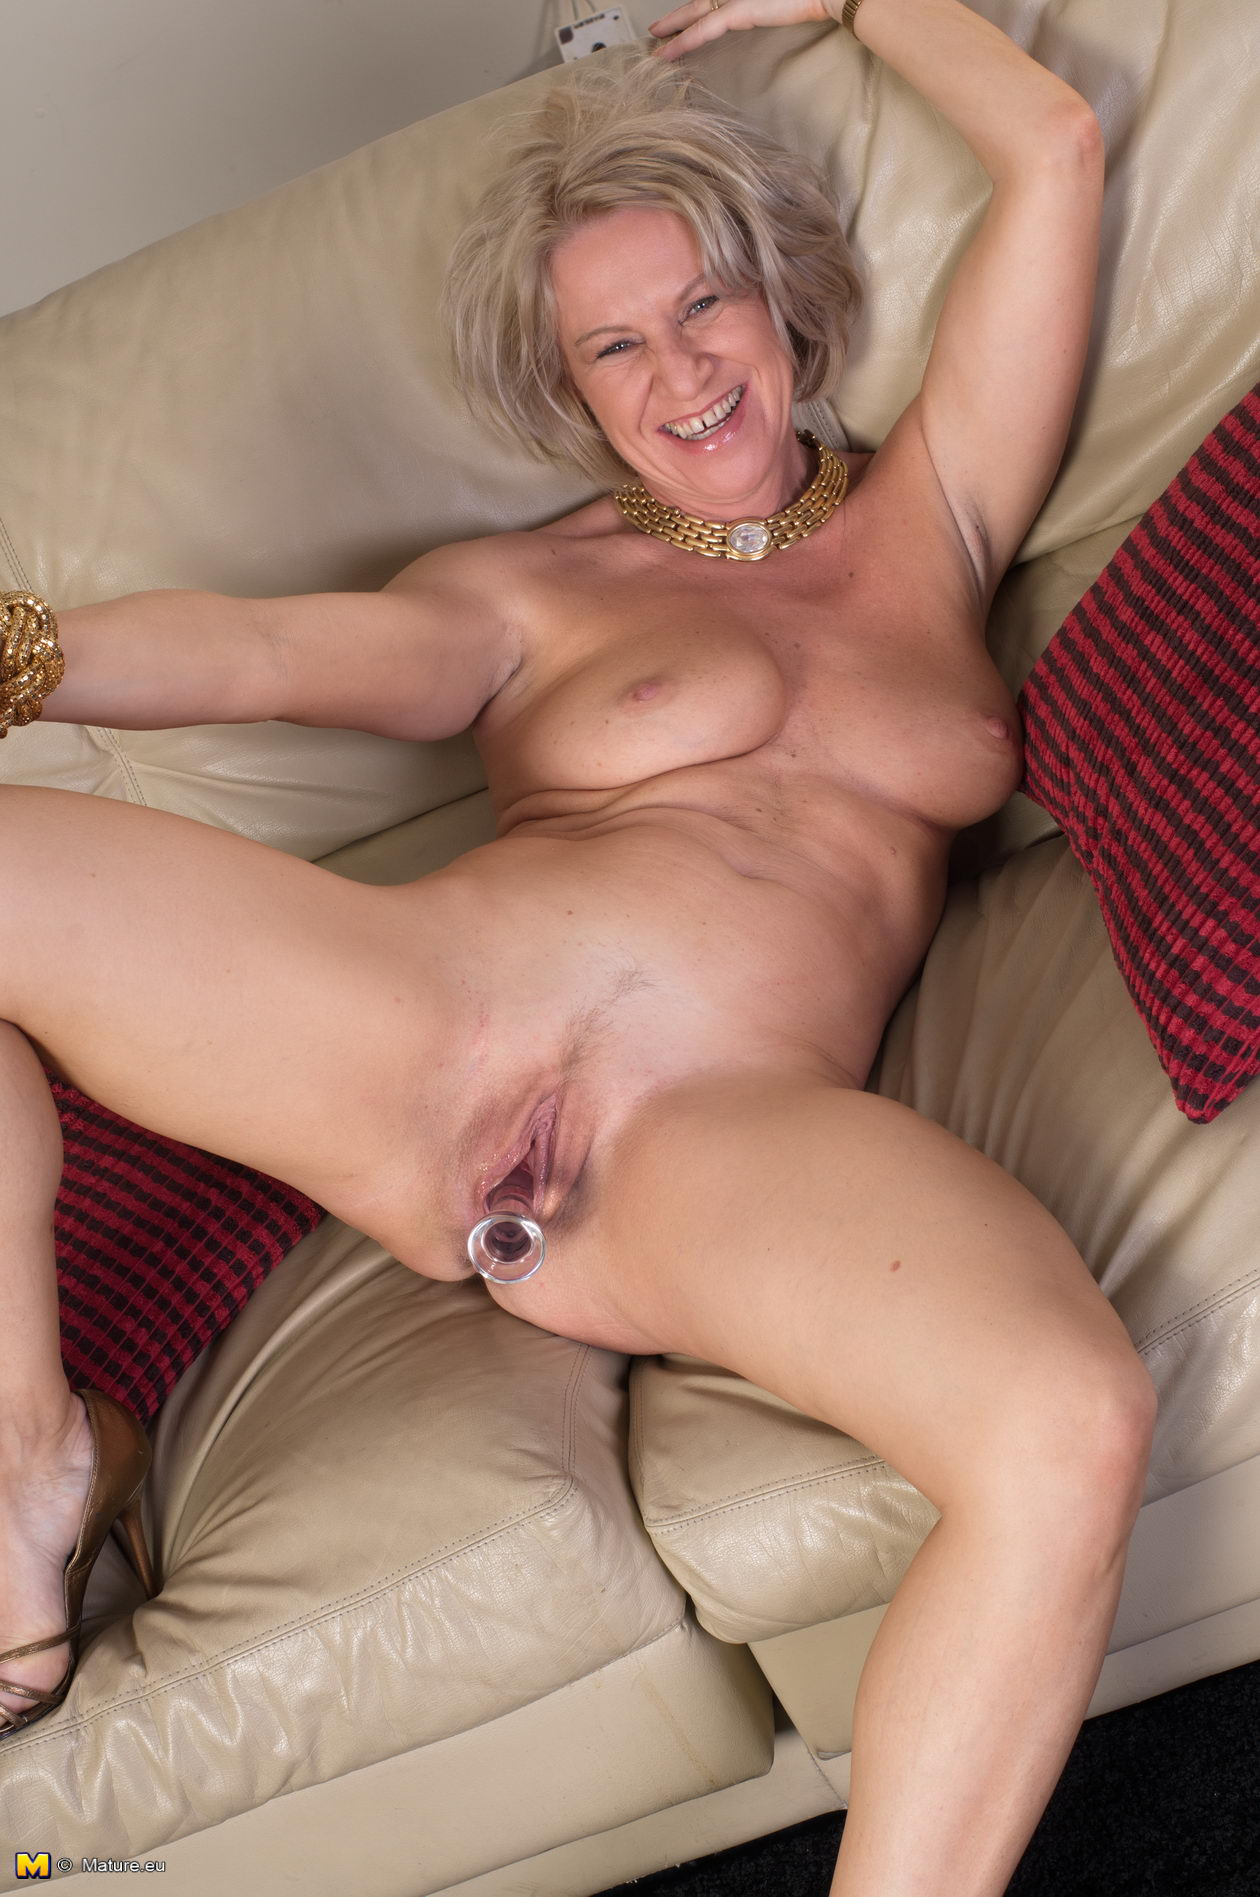 Free naked older women videos